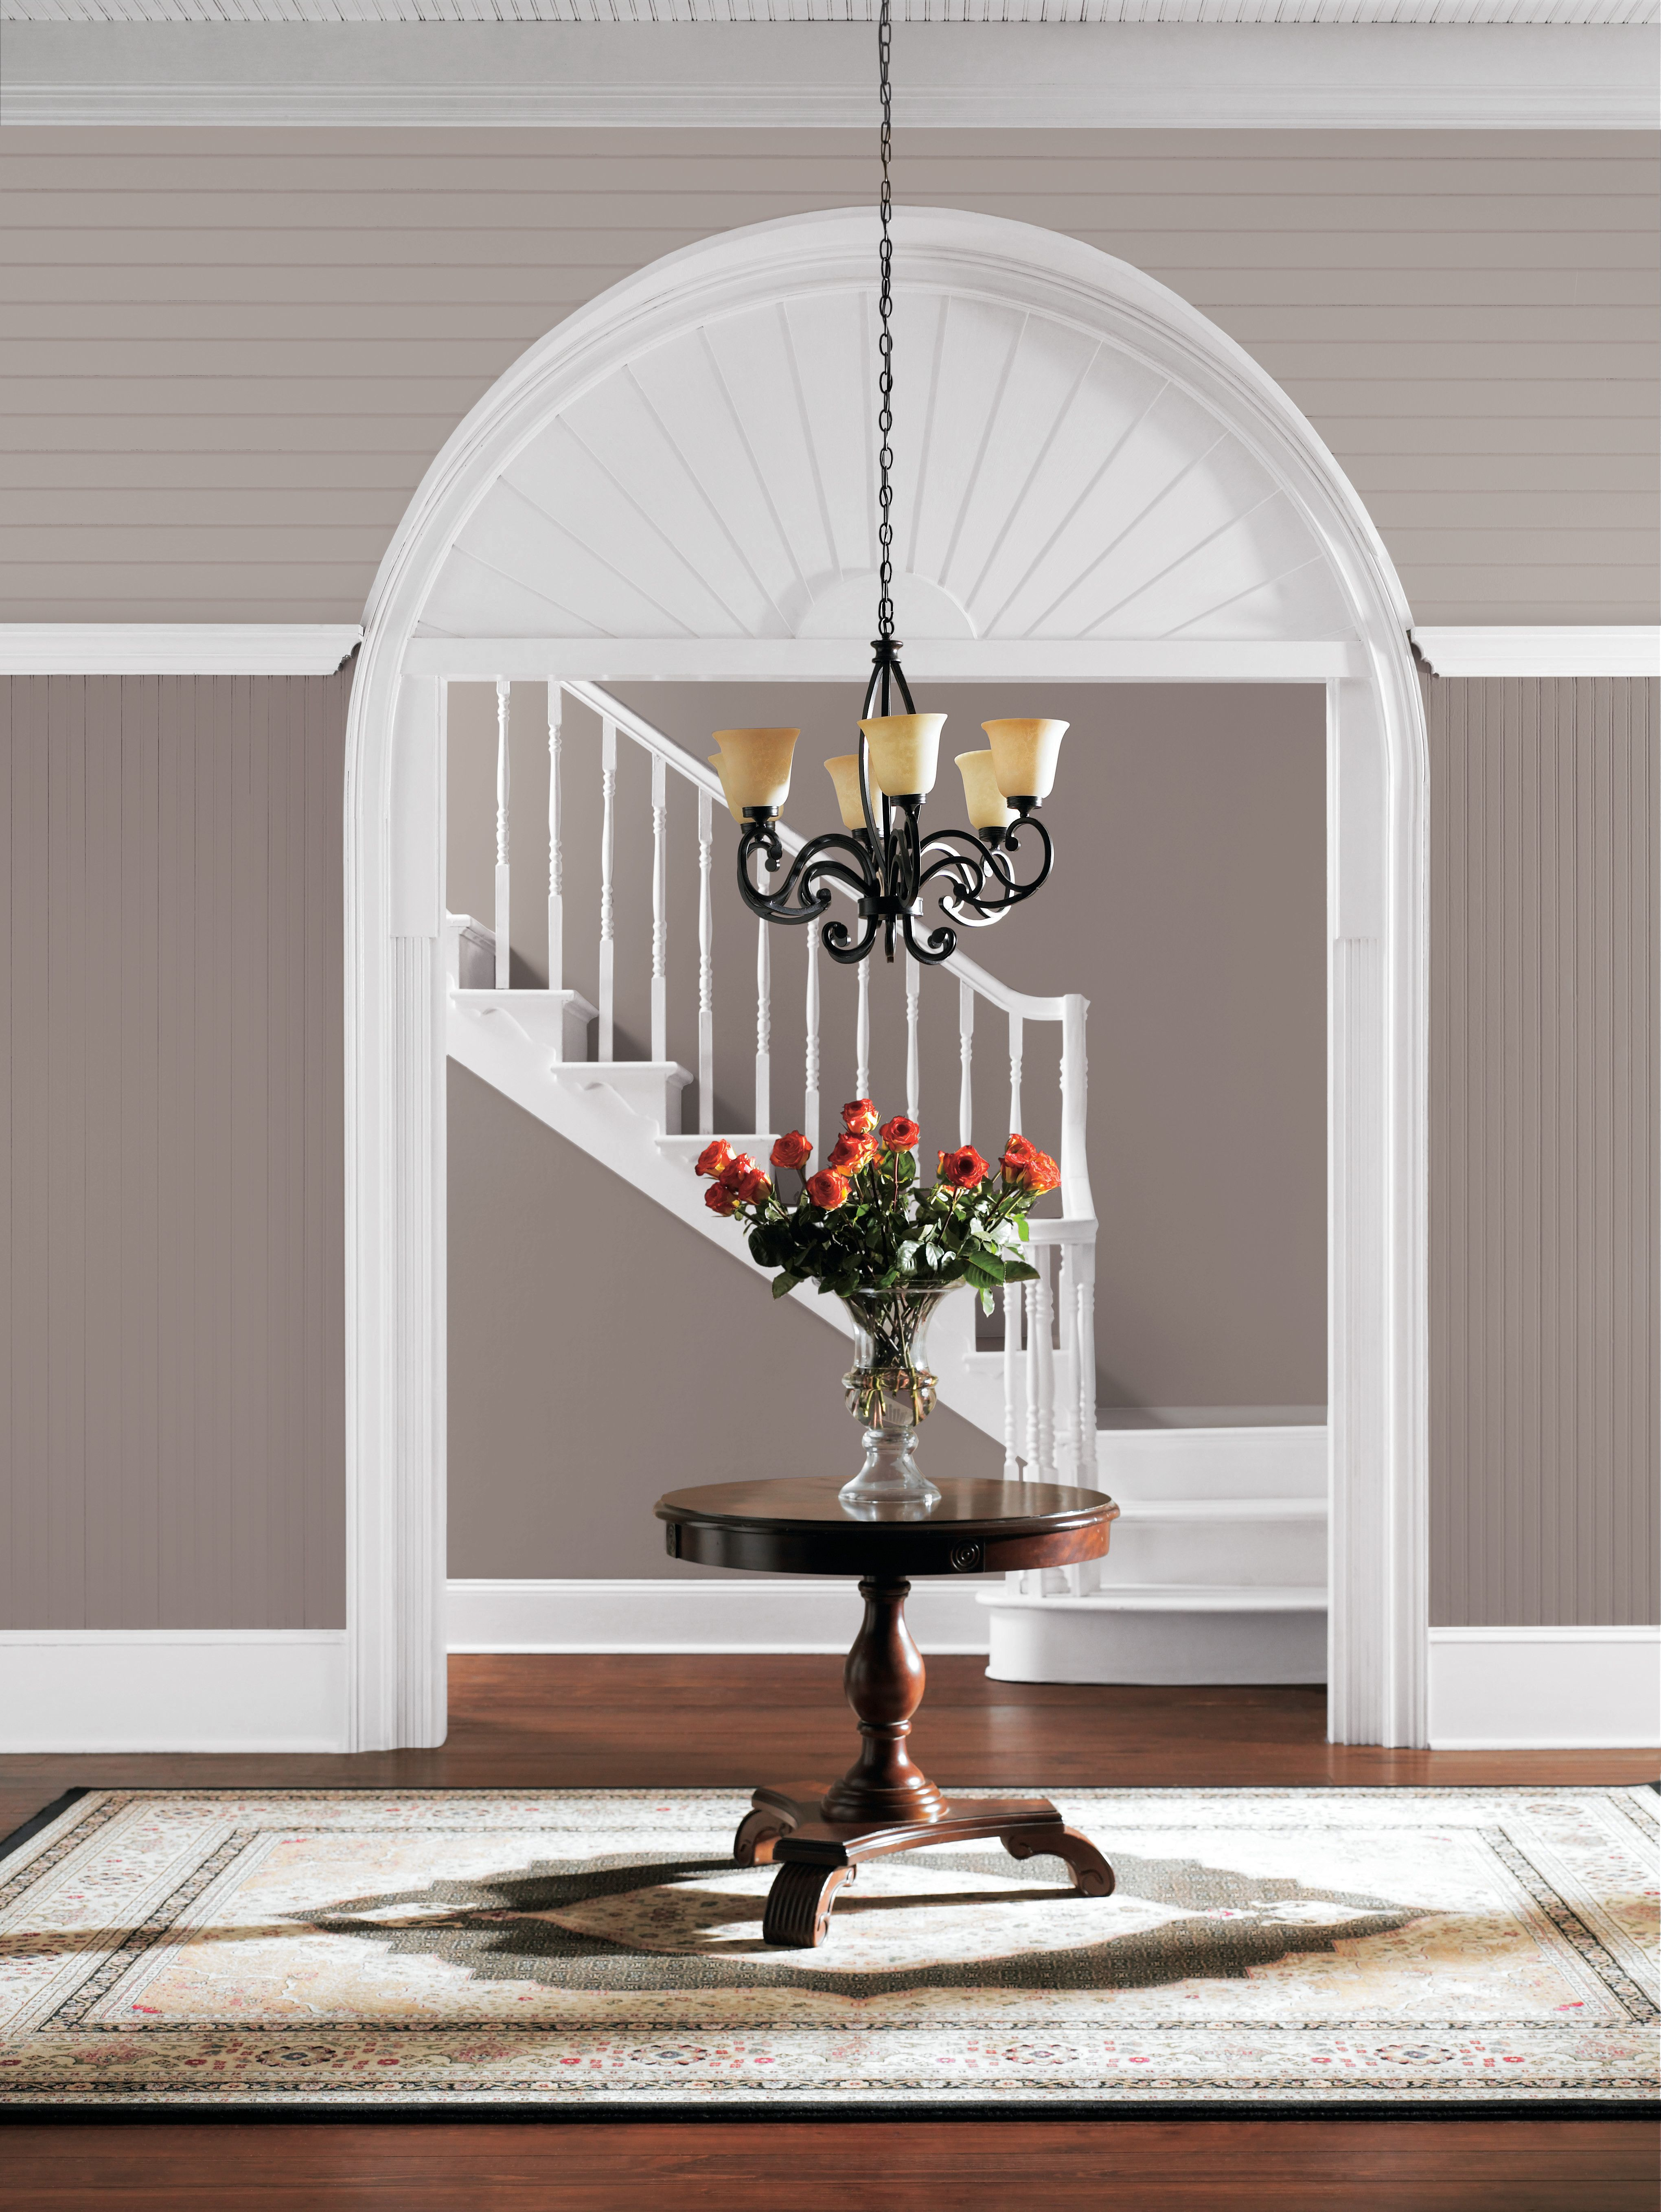 2018 Color Trends   Interior Designer Paint Color Predictions For 2018    House Beautiful